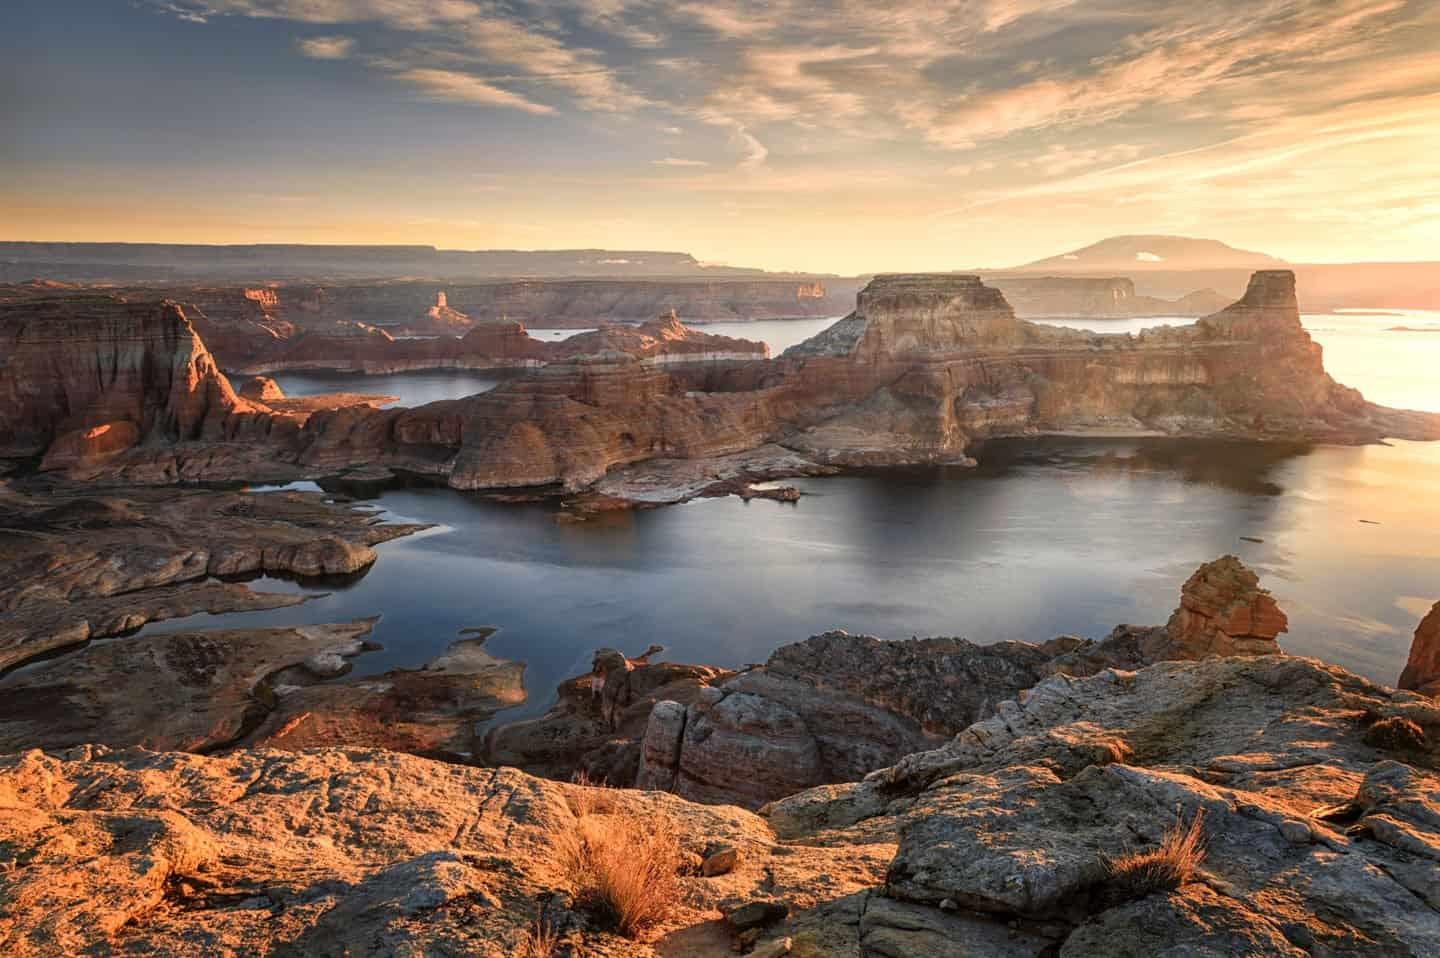 Alstrom Point is one of the best places for sunset in Page, as shown here.